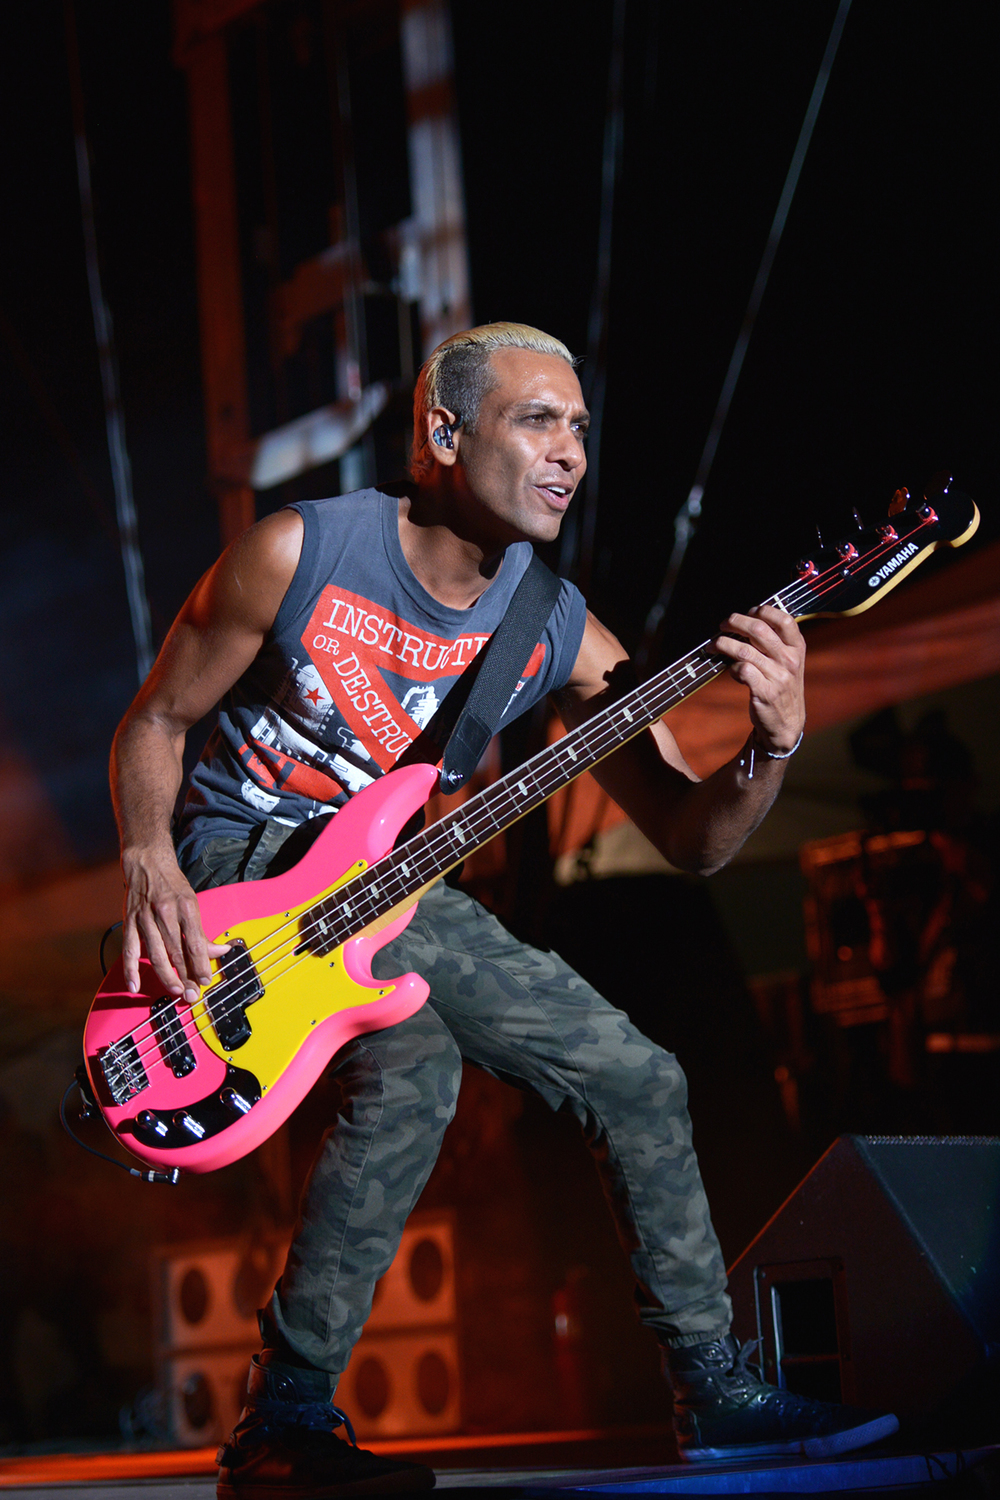 nodoubt_riotfest_chicago_2015_5.jpg